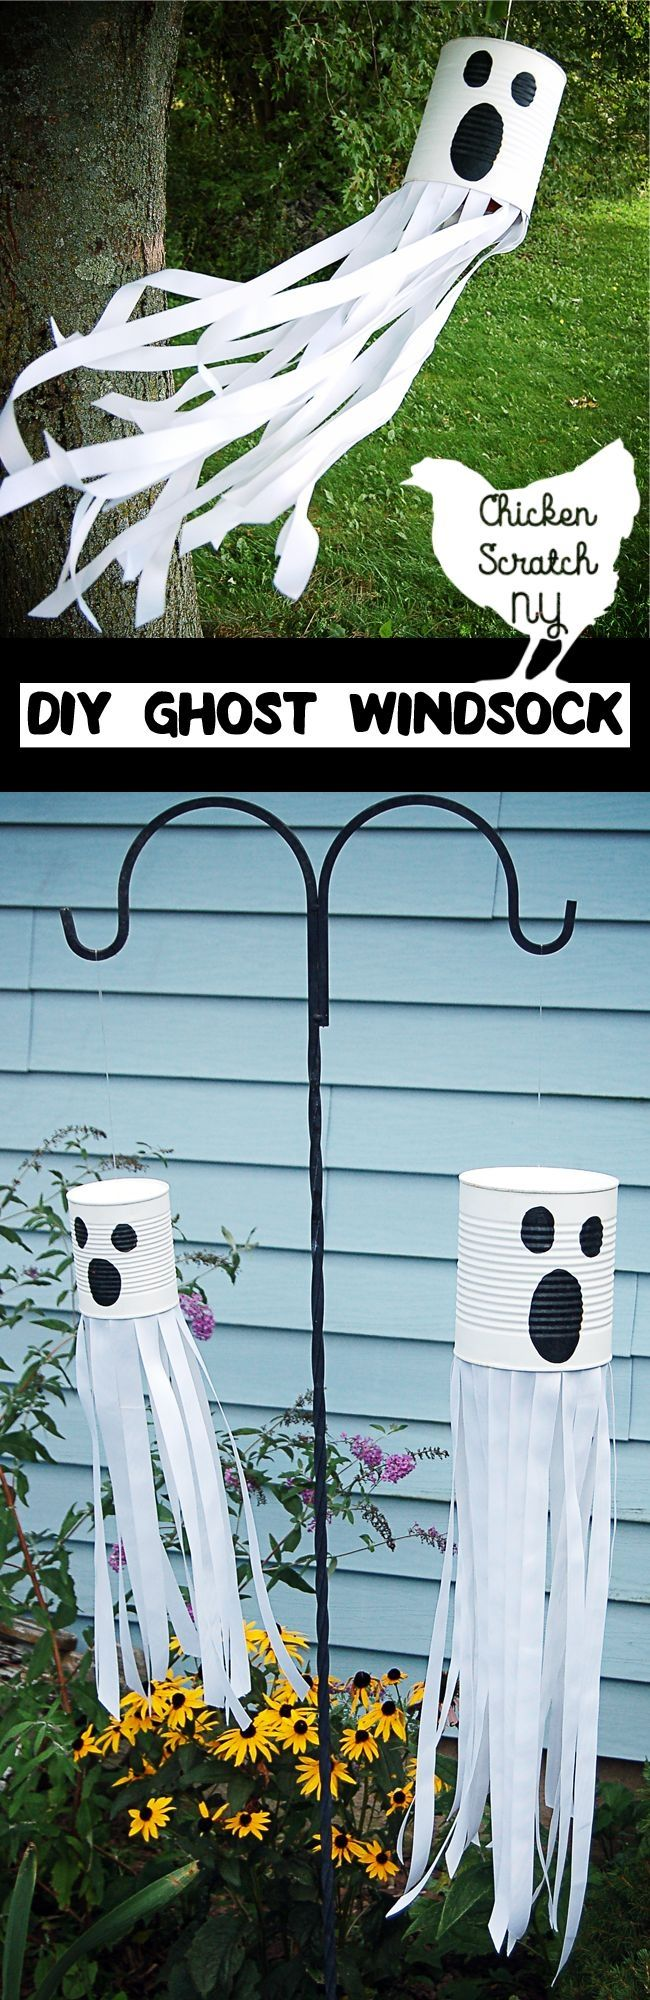 101 spooky indoor outdoor halloween decoration ideas - Outdoor Halloween Decoration